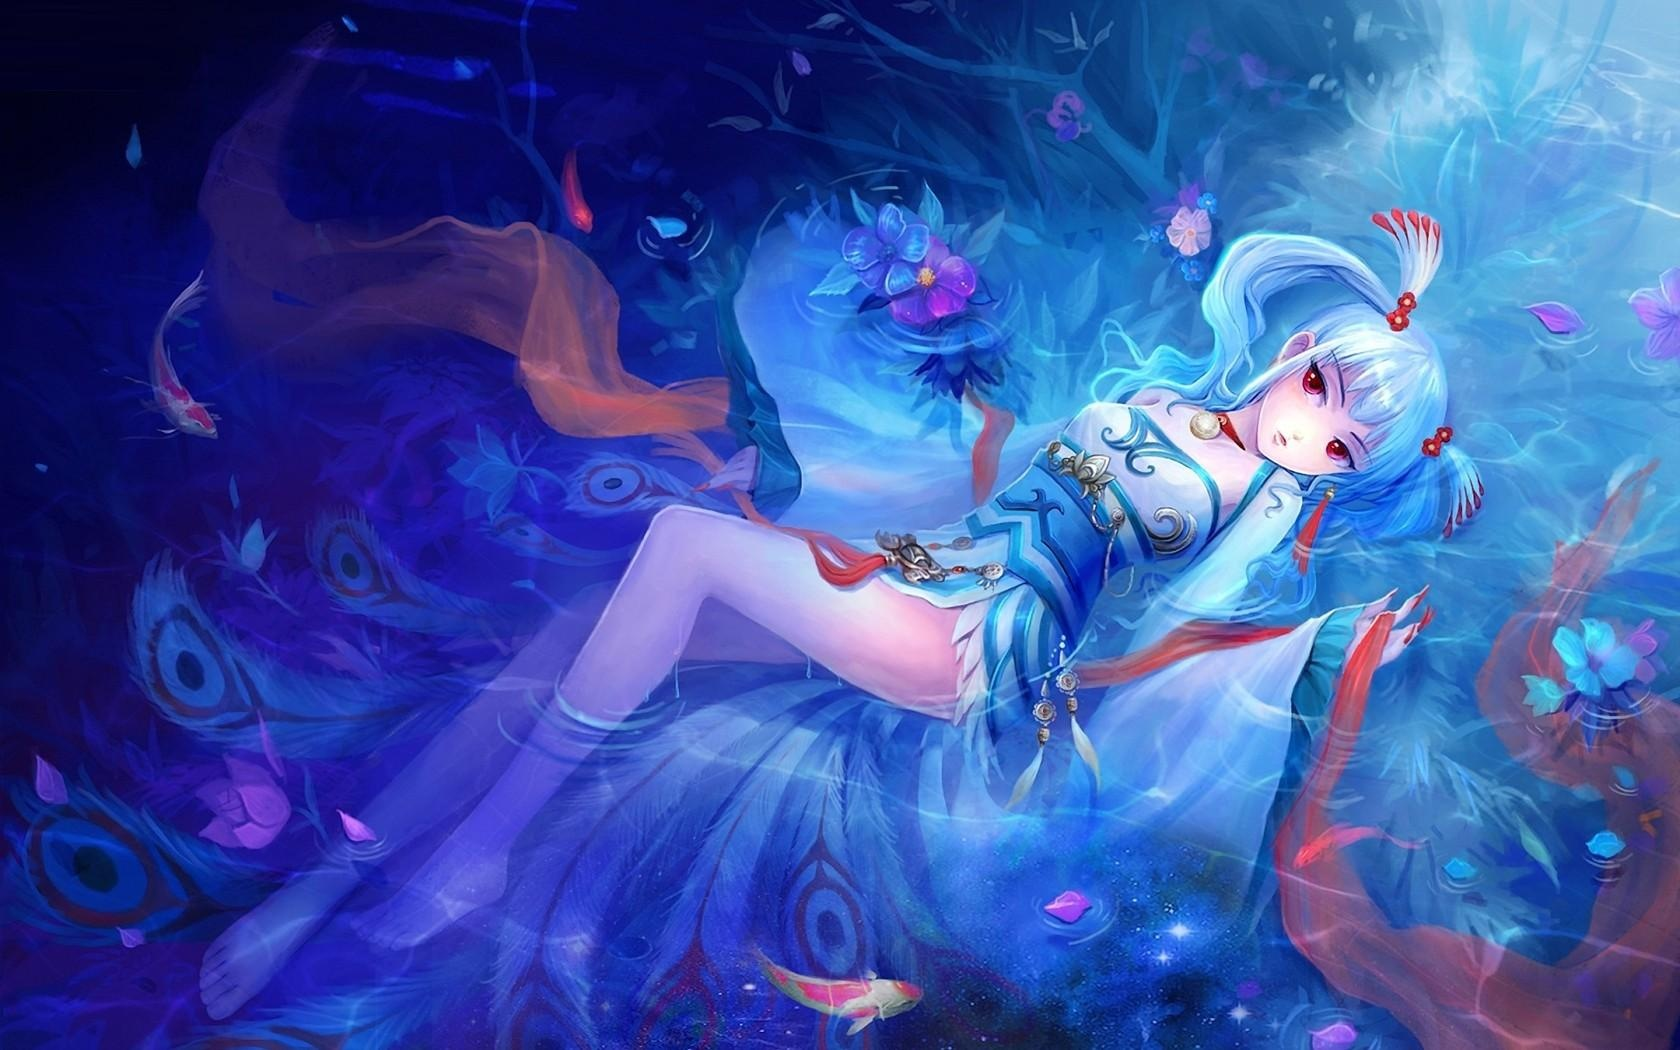 Water In Laying Anime Girl Wallpapers   1680x1050   349121 1680x1050